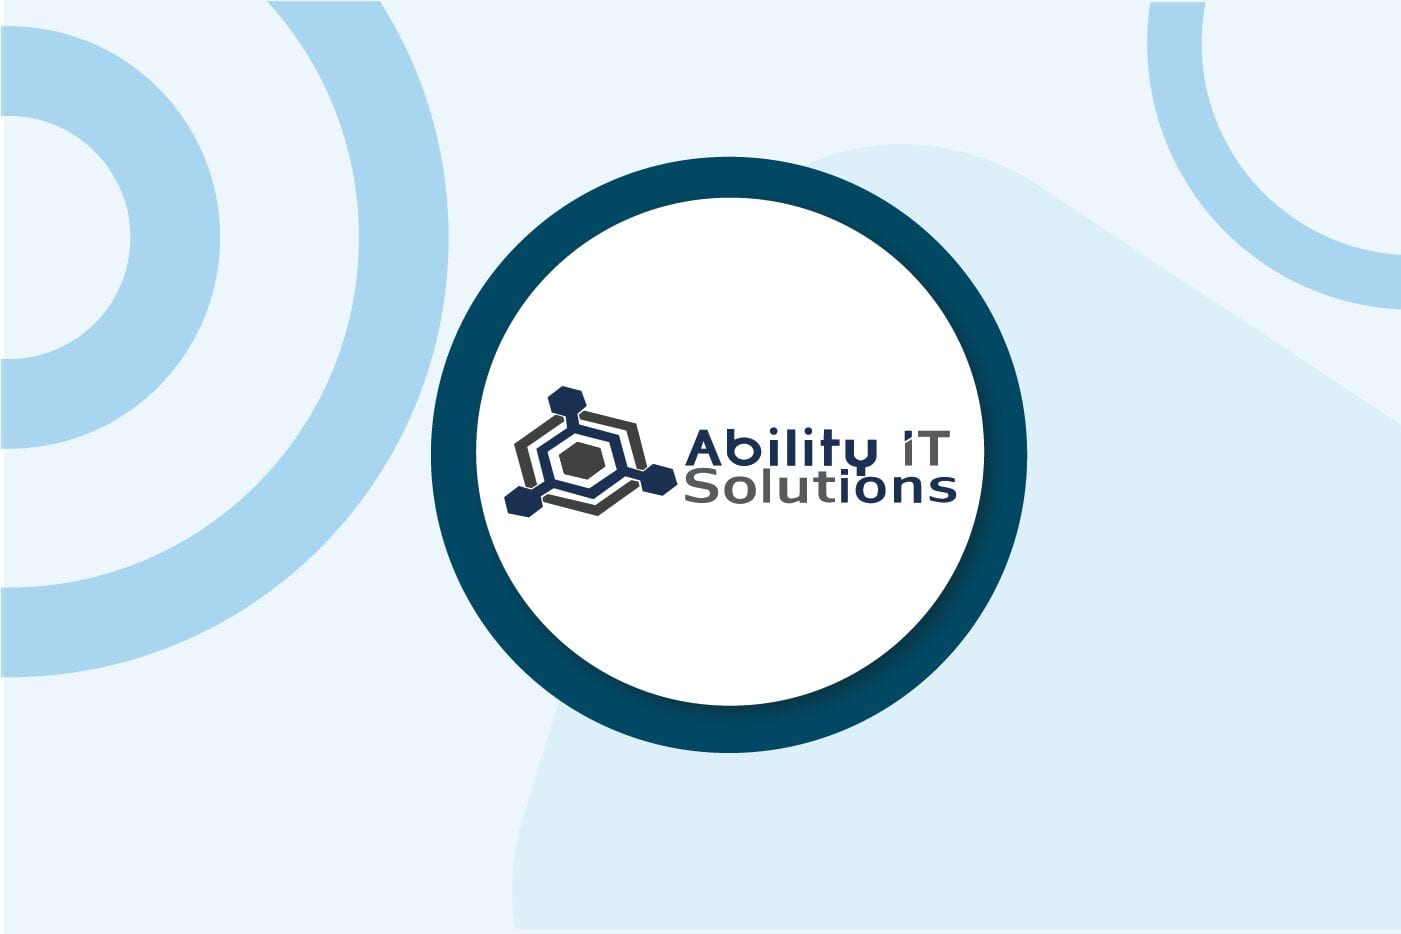 Ability IT Solutions